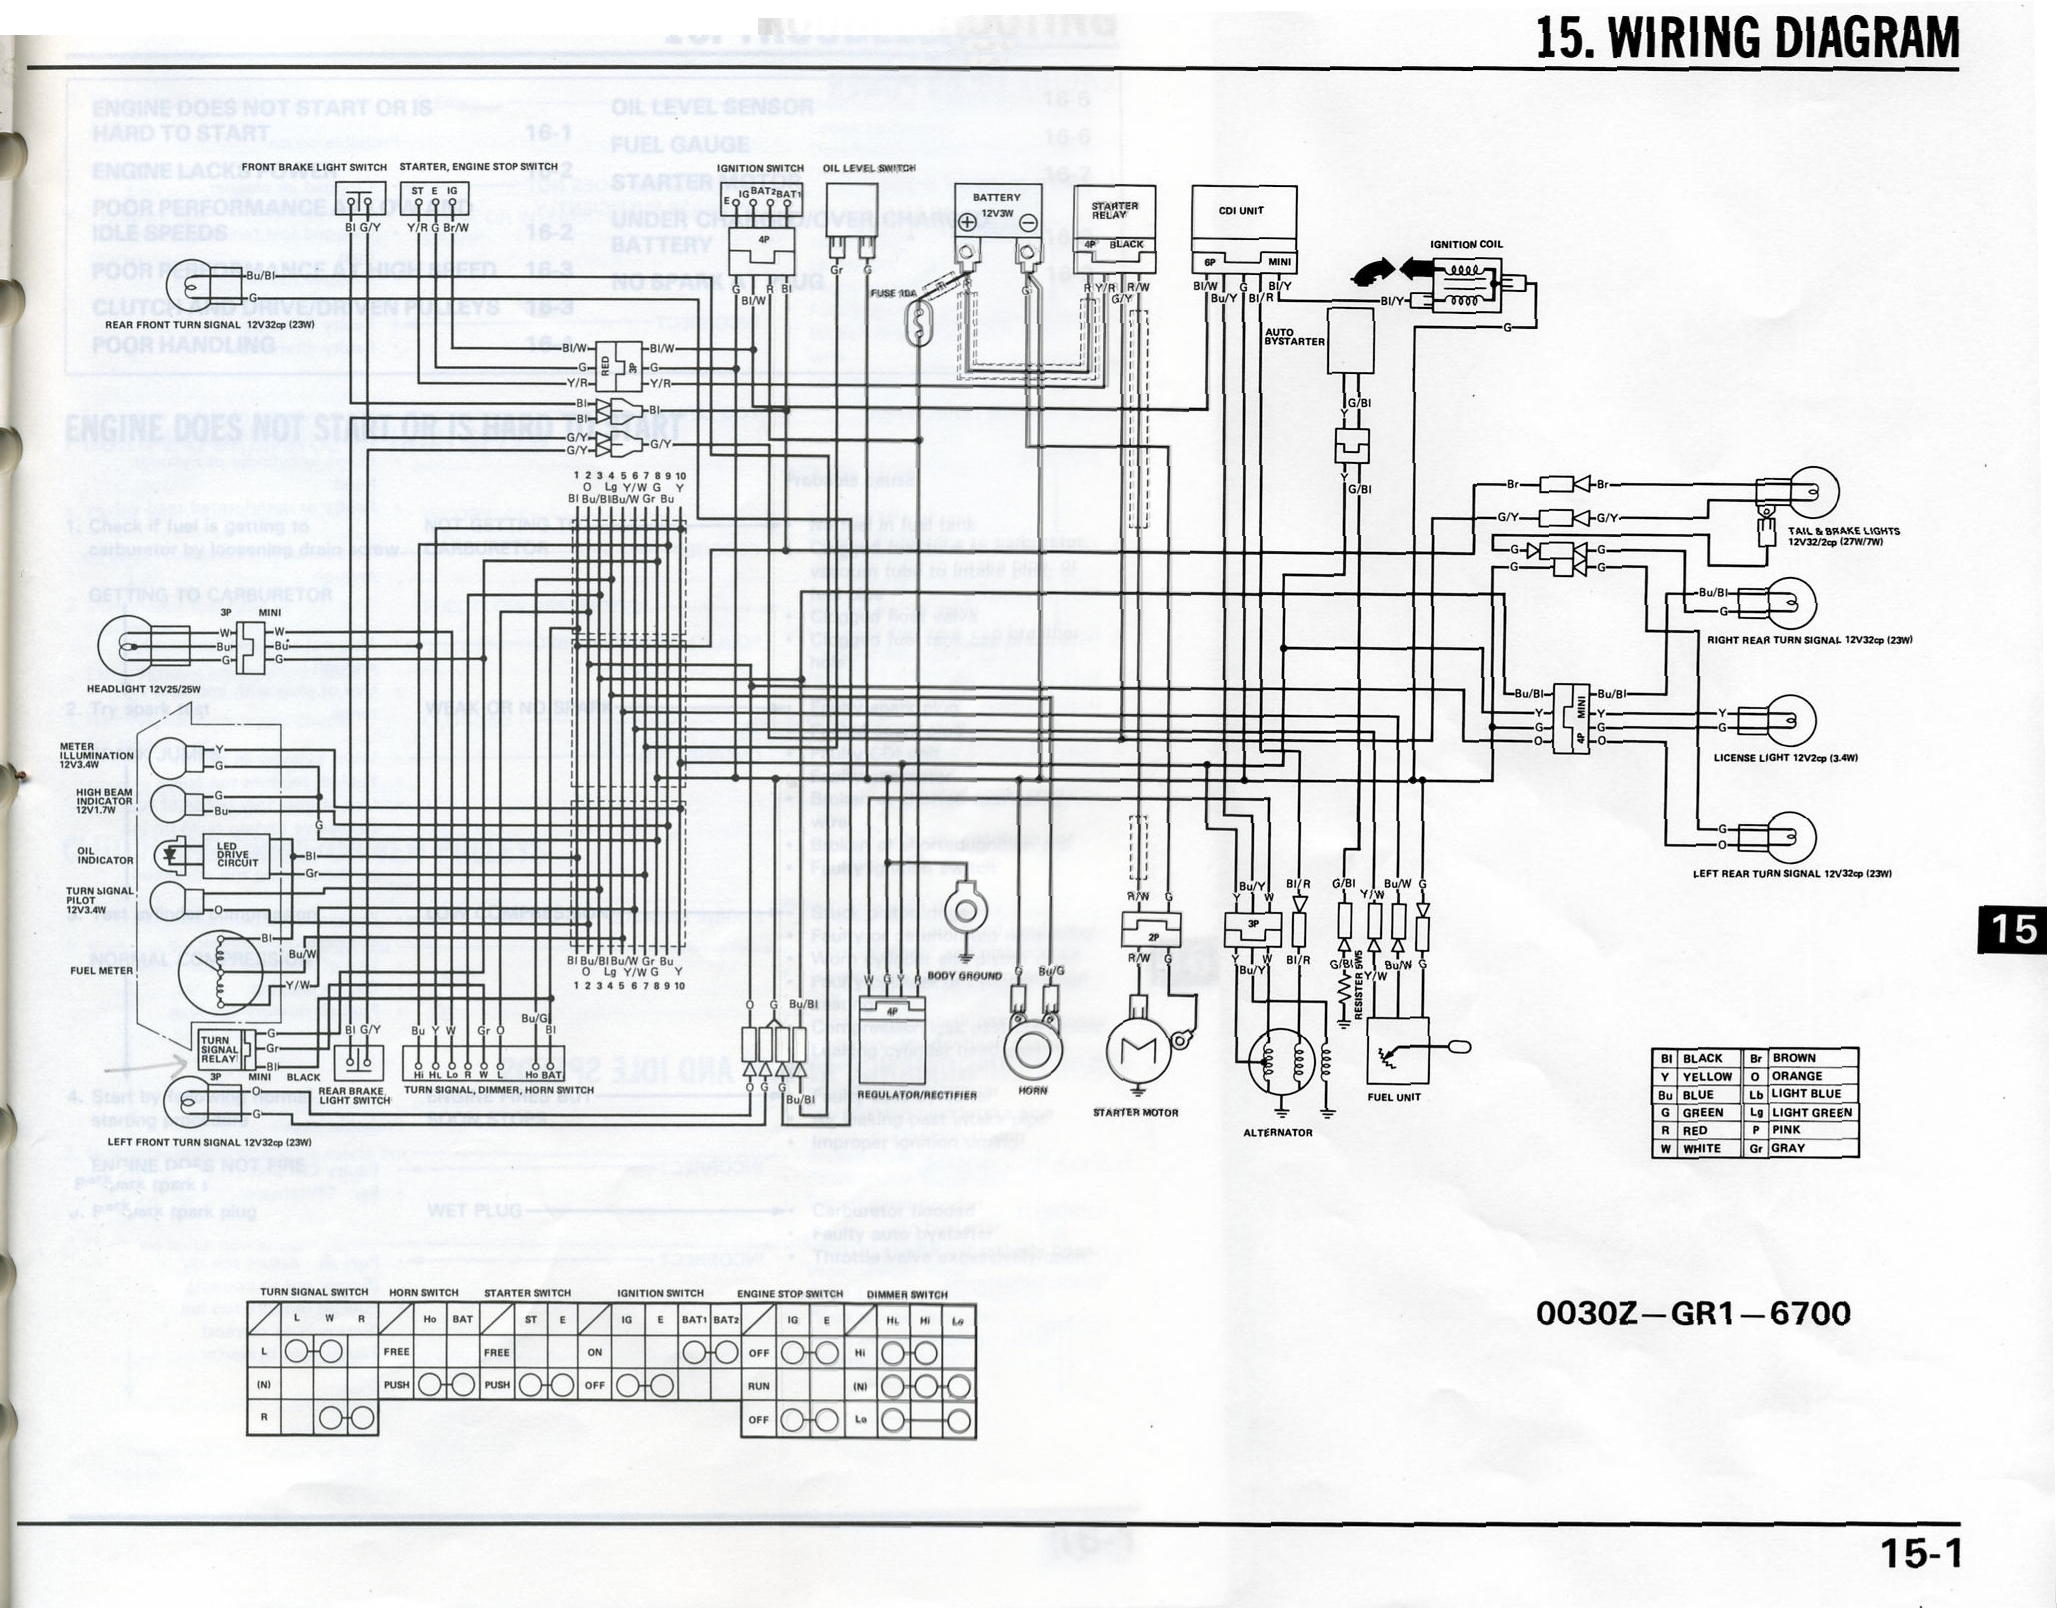 1984 Honda Spree Wiring Diagram : 31 Wiring Diagram Images